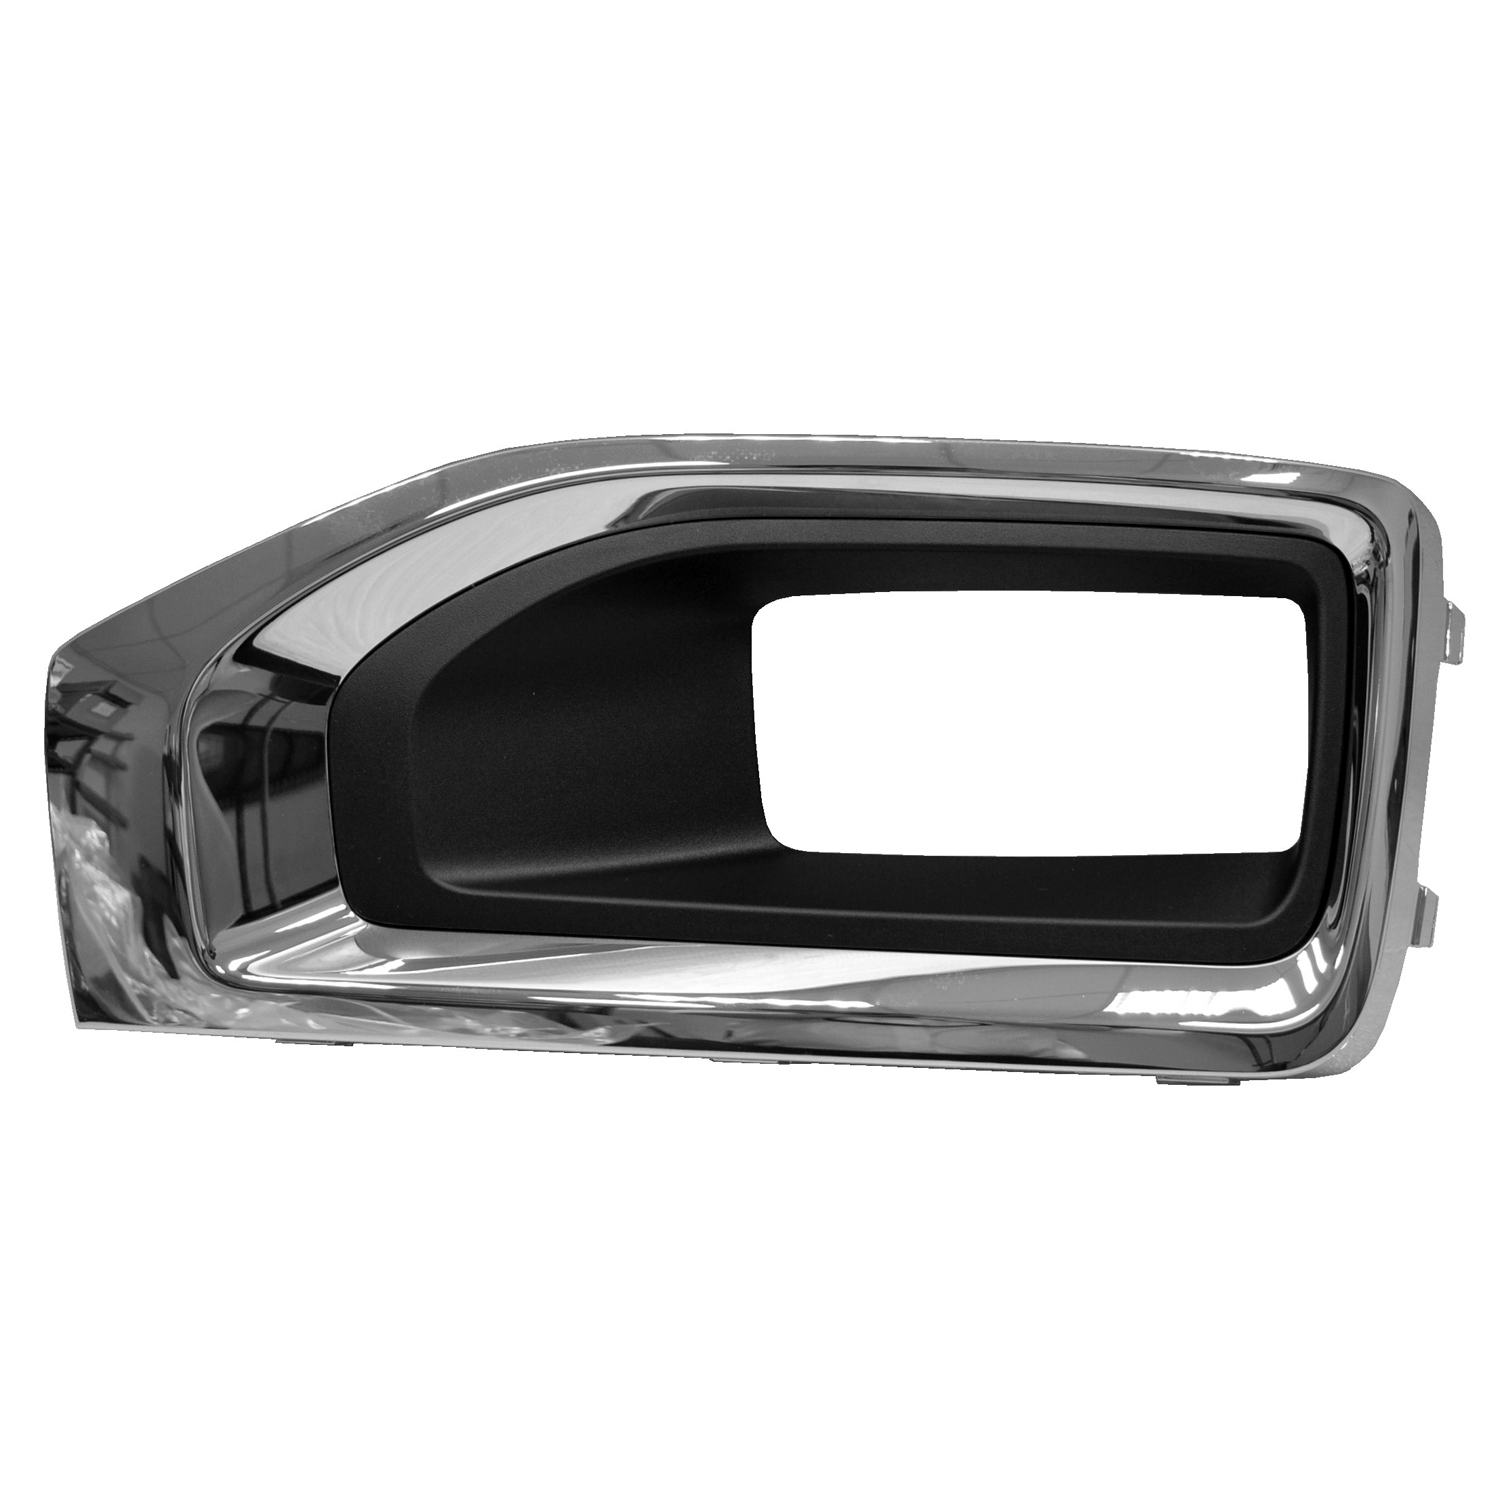 CPP Replacement Fog Light Bezel CH1038177 for 2015-2017 Dodge Challenger